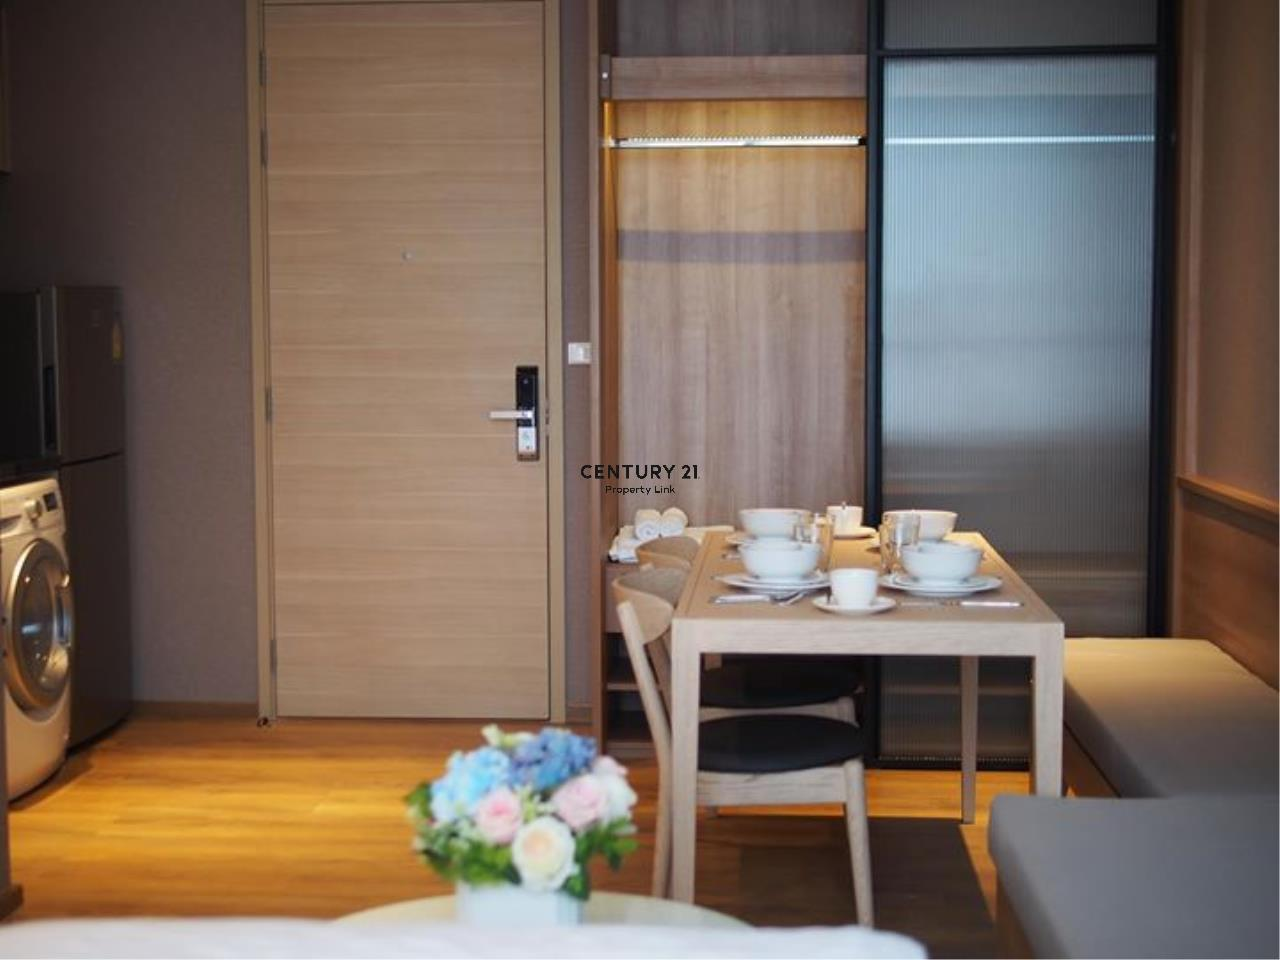 Century21 Property Link Agency's 39-CC-61512 Park 24 Room For Sale/ Rent 1 Bedroom Near BTS Phrom Phong Sale price 7.57MB./ 28,000THB/ month 2